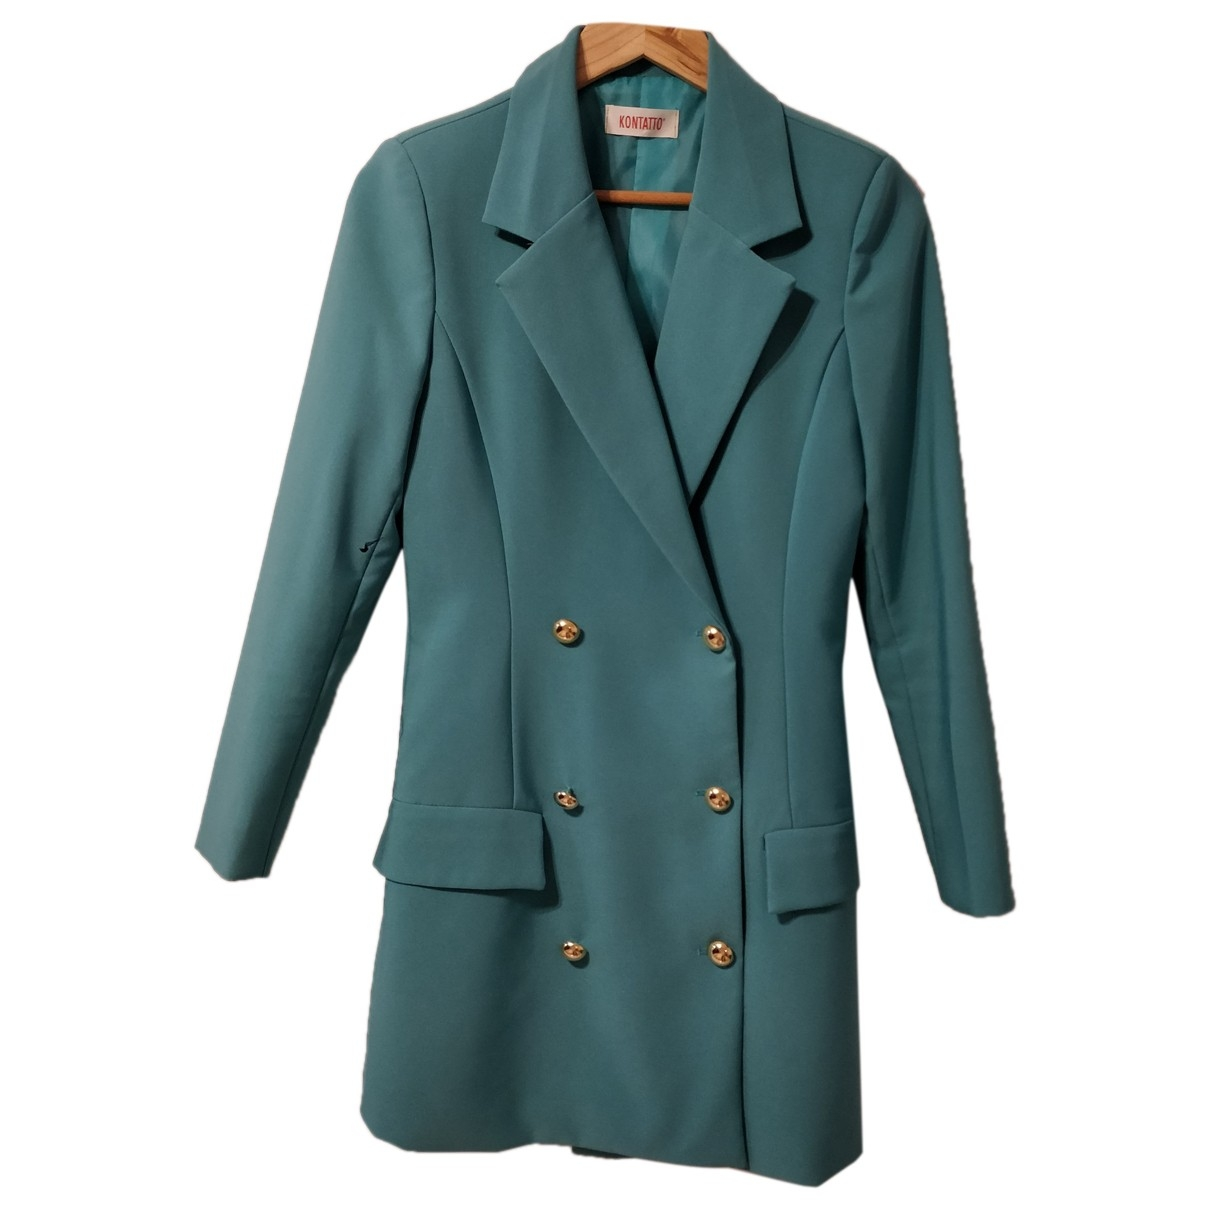 Non Signé / Unsigned \N Turquoise dress for Women S International